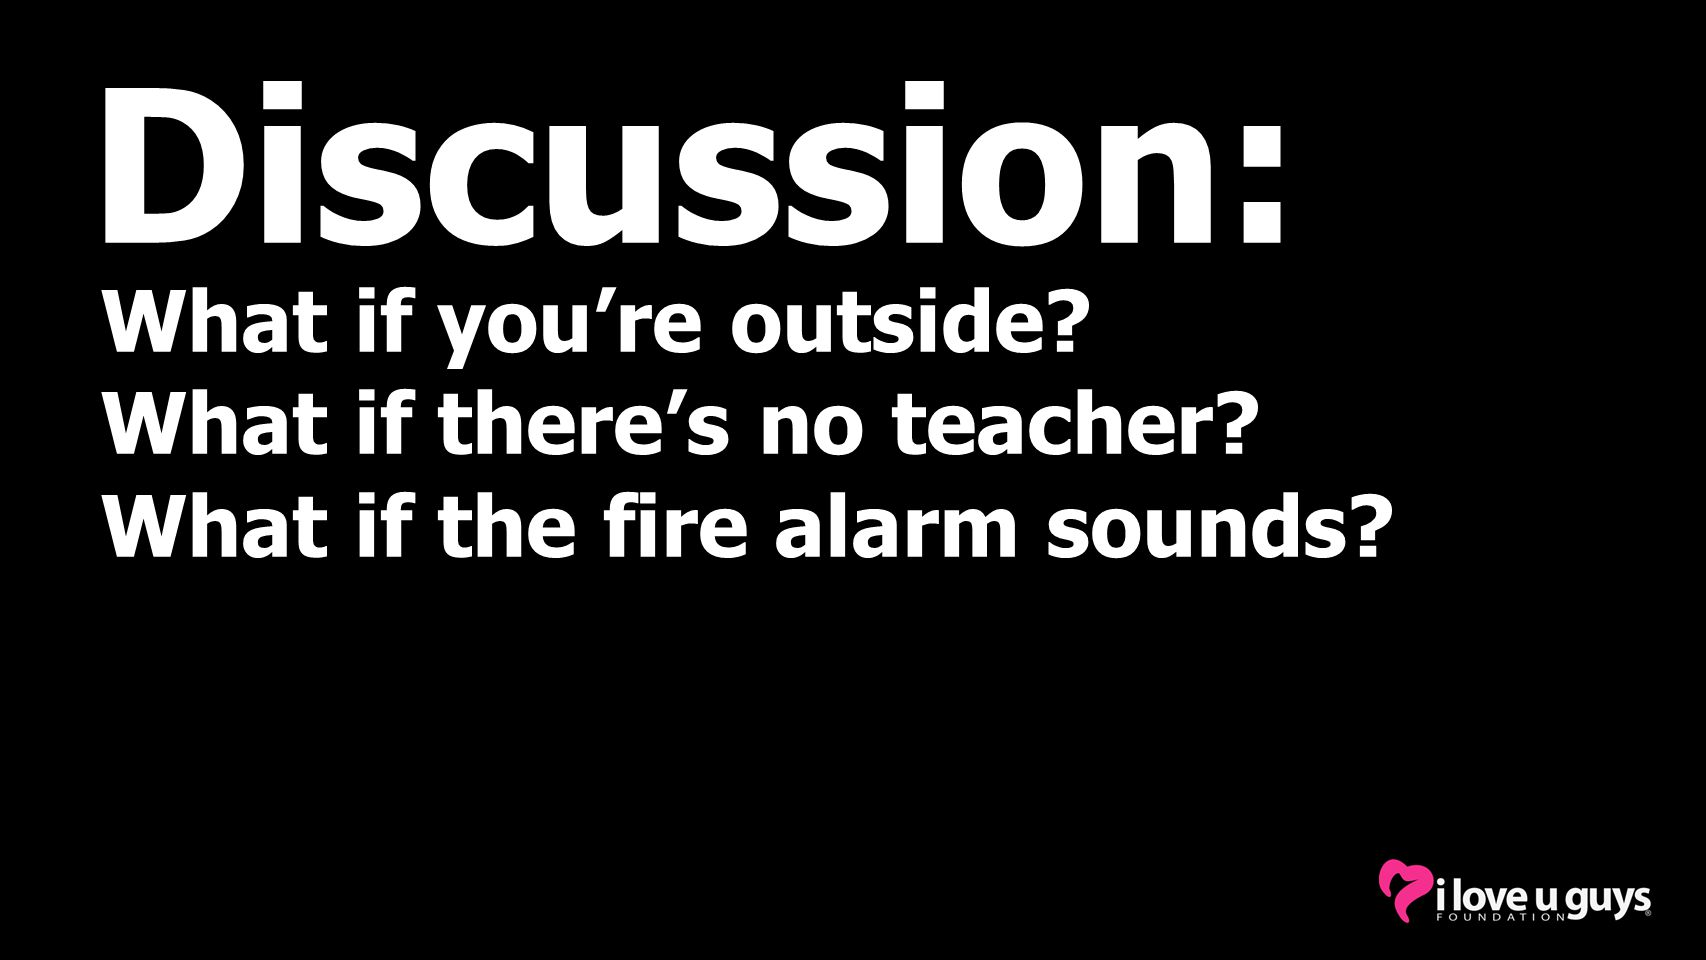 Discussion: What if you're outside? What if there's no teacher? What if the fire alarm sounds?